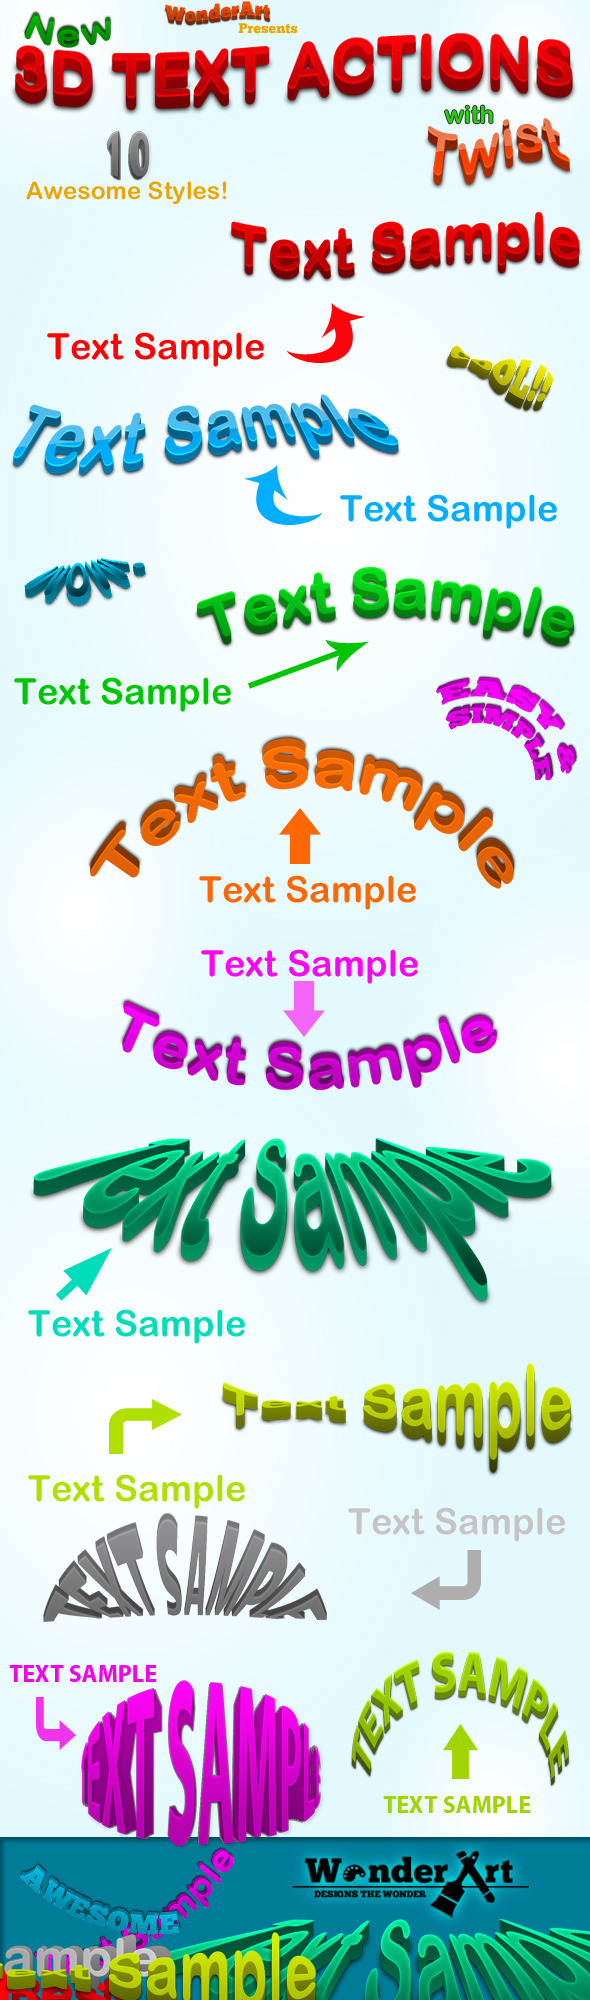 3D Warped Text Action